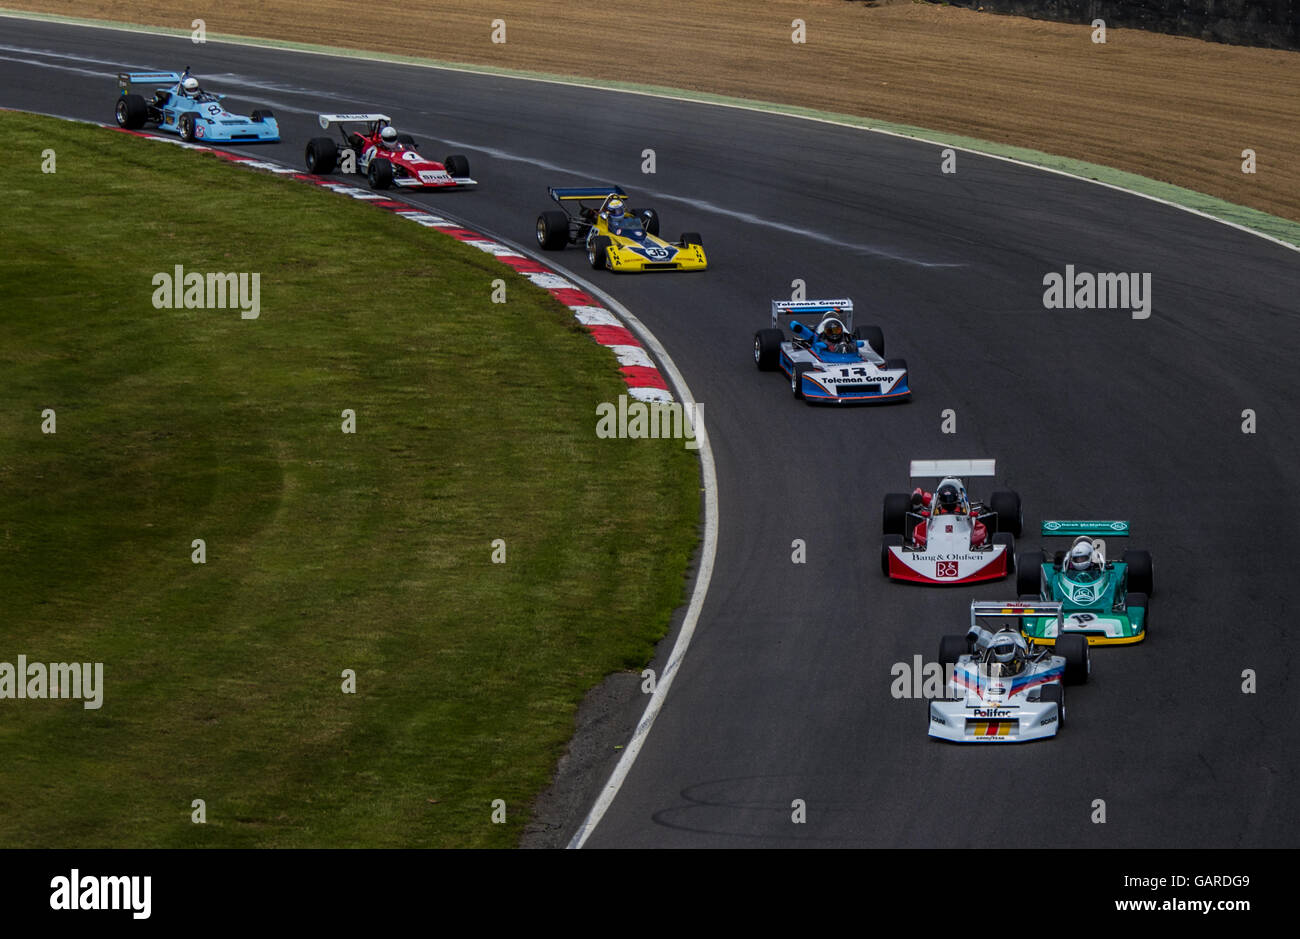 Historic F2 cars round Paddock Hill bend at Brands Hatch, Legends of Brands Hatch meeting, Historic F2 FIA International - Stock Image